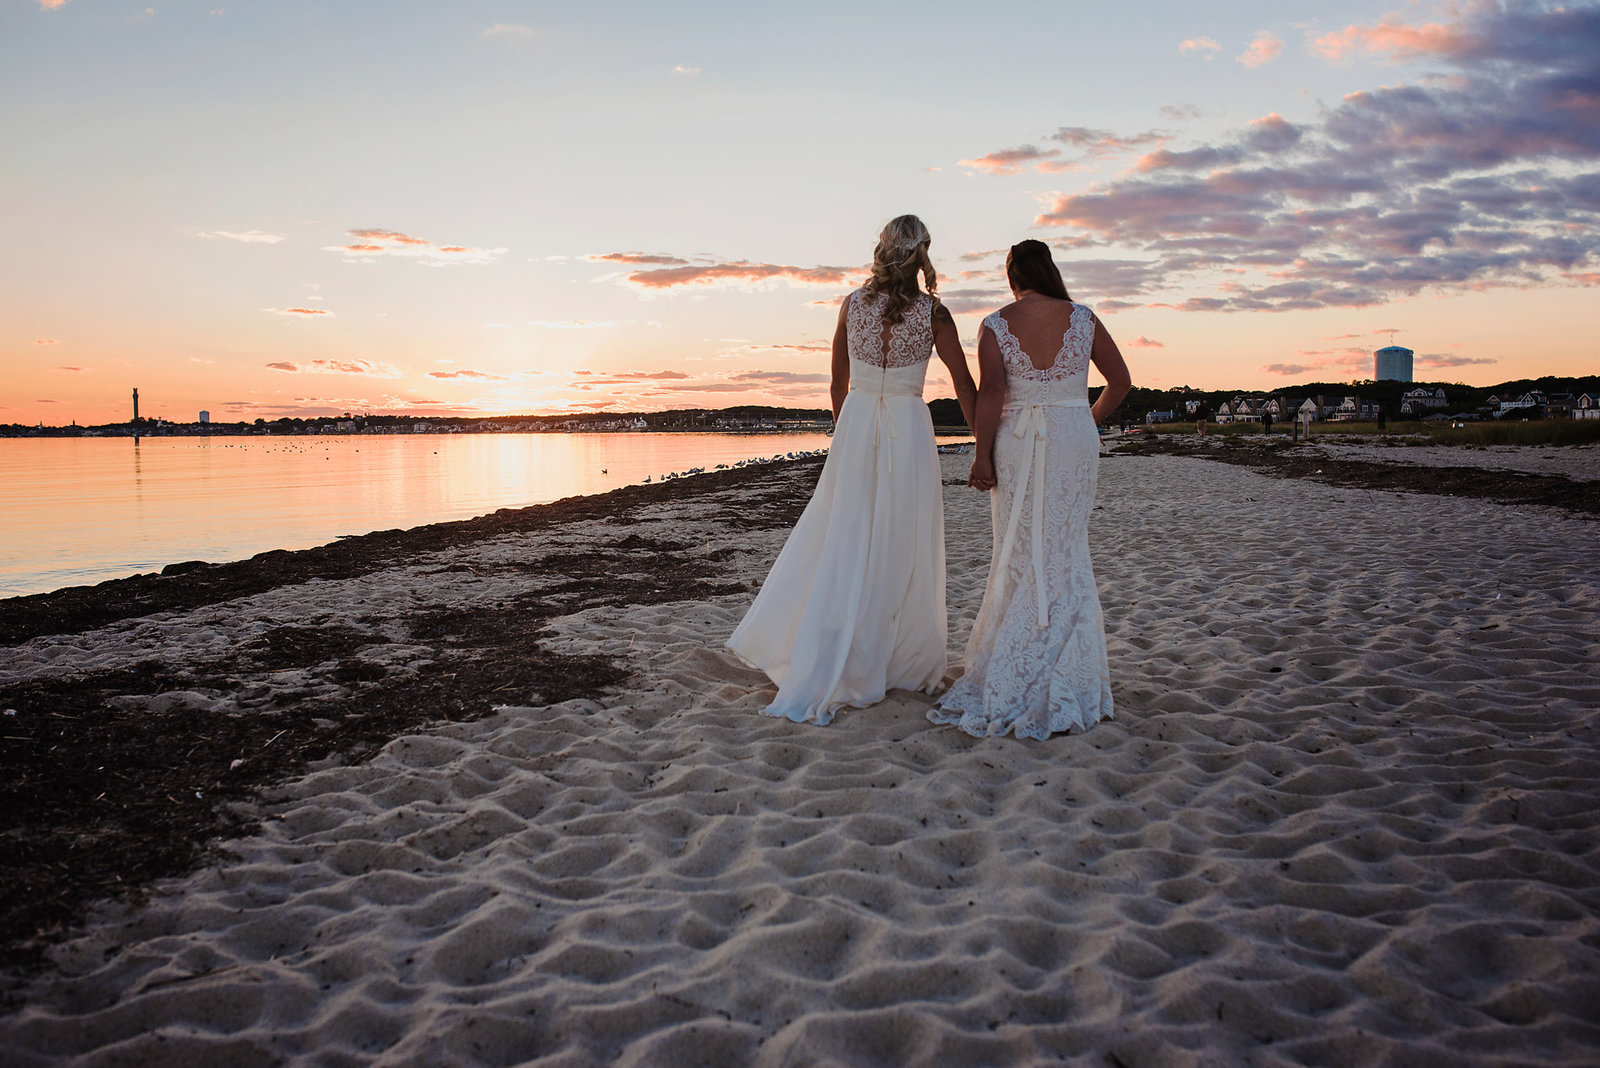 Same sex wedding, Cape Cod wedding, two brides, walking on beach at sunset